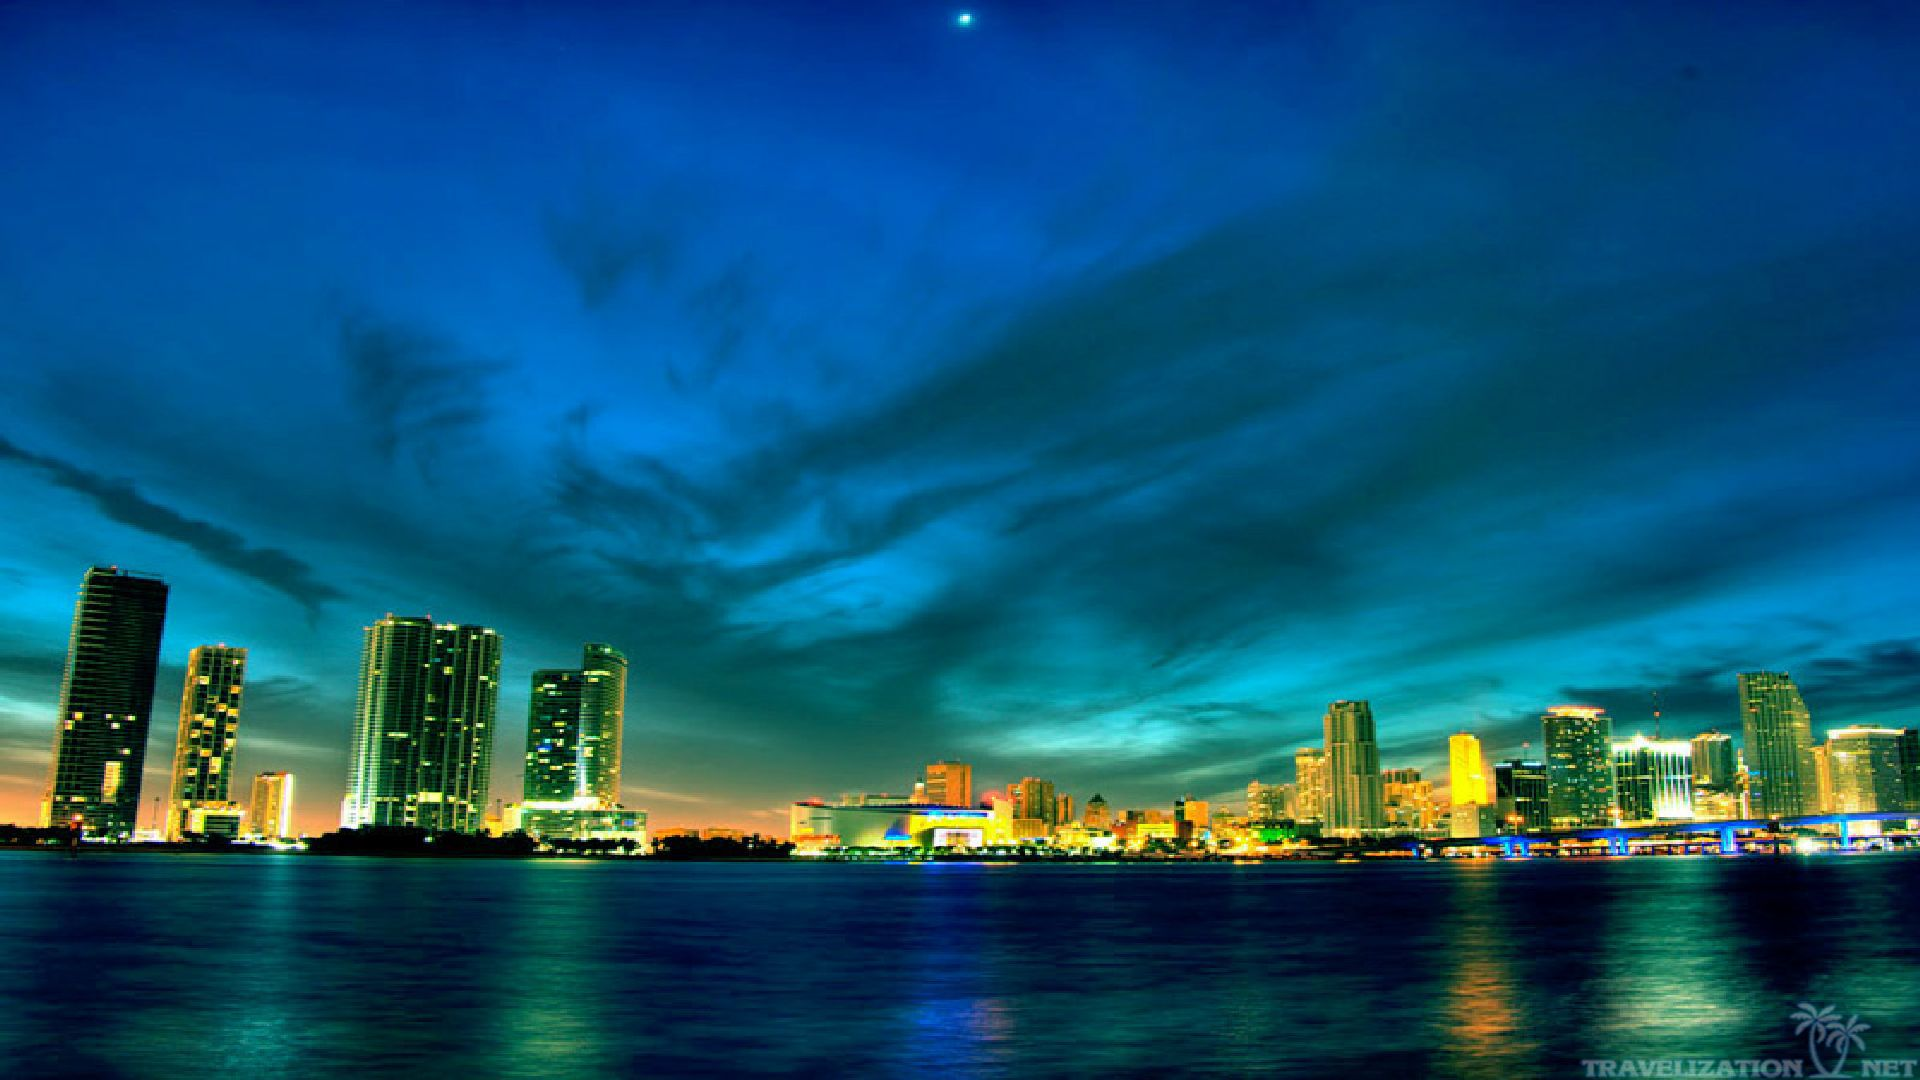 Miami wallpaper 18 1920x1080